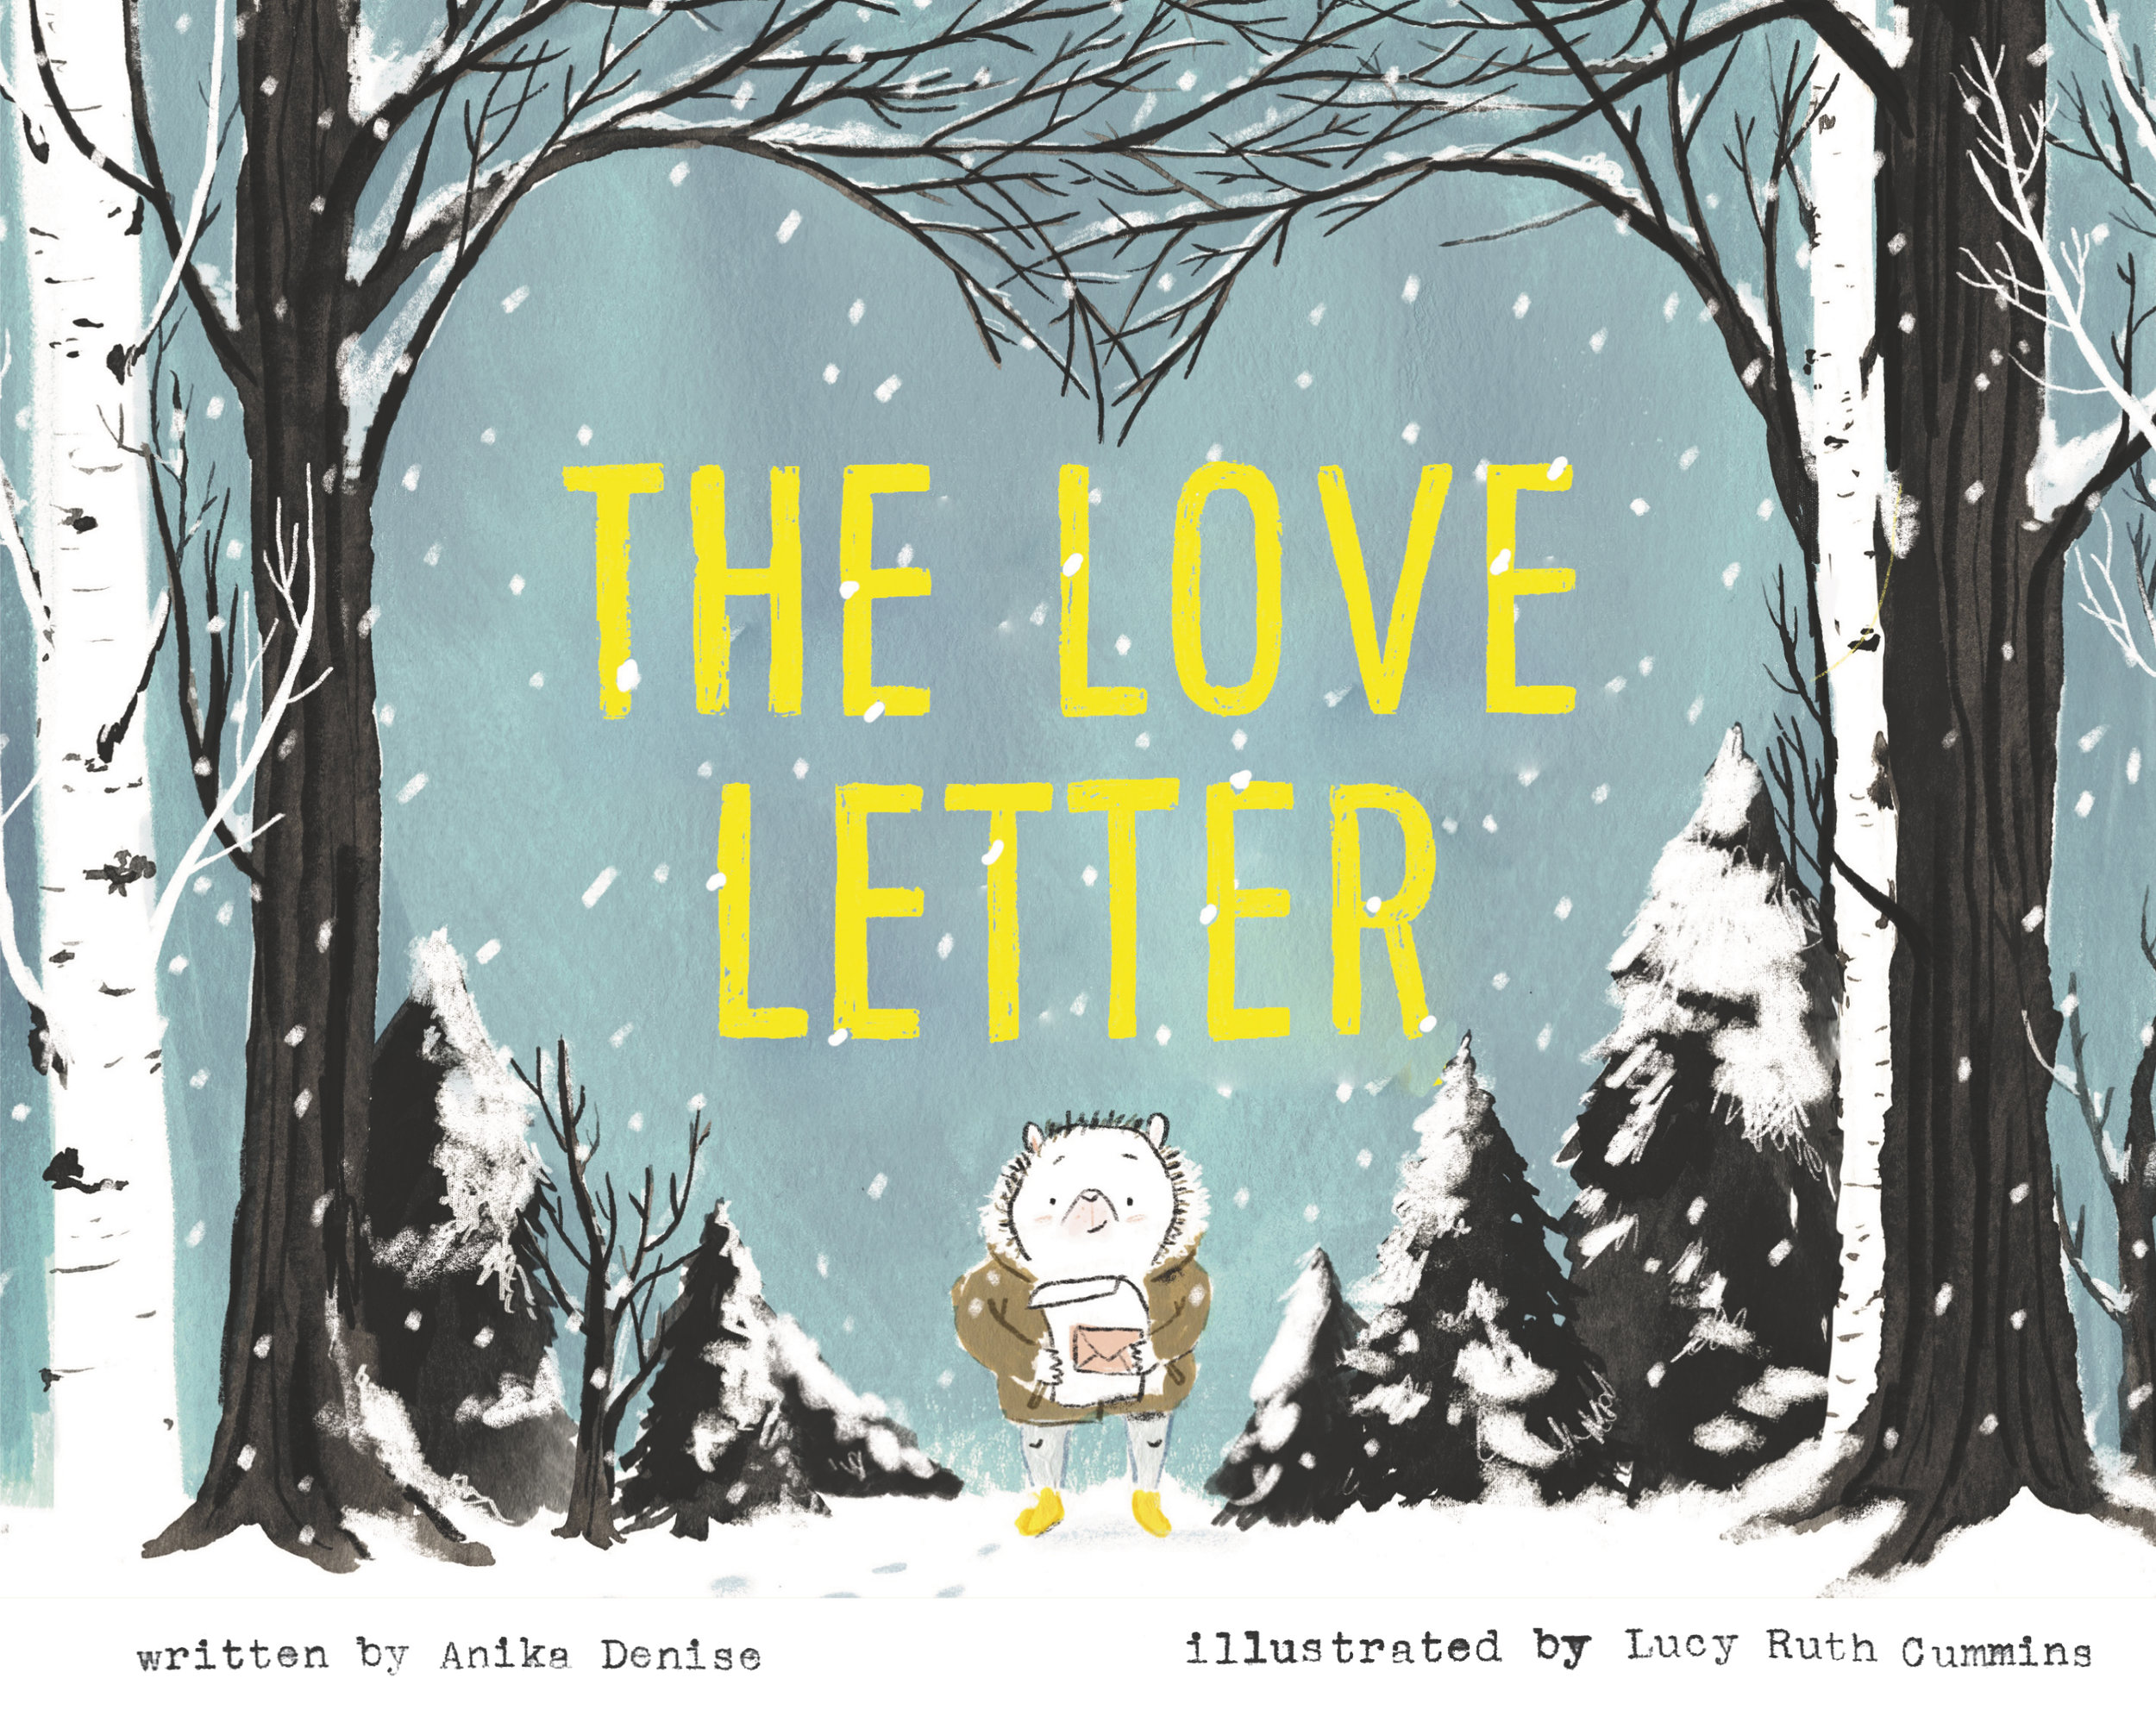 The Love Letter,  (written by Anika Almaduy Denise).